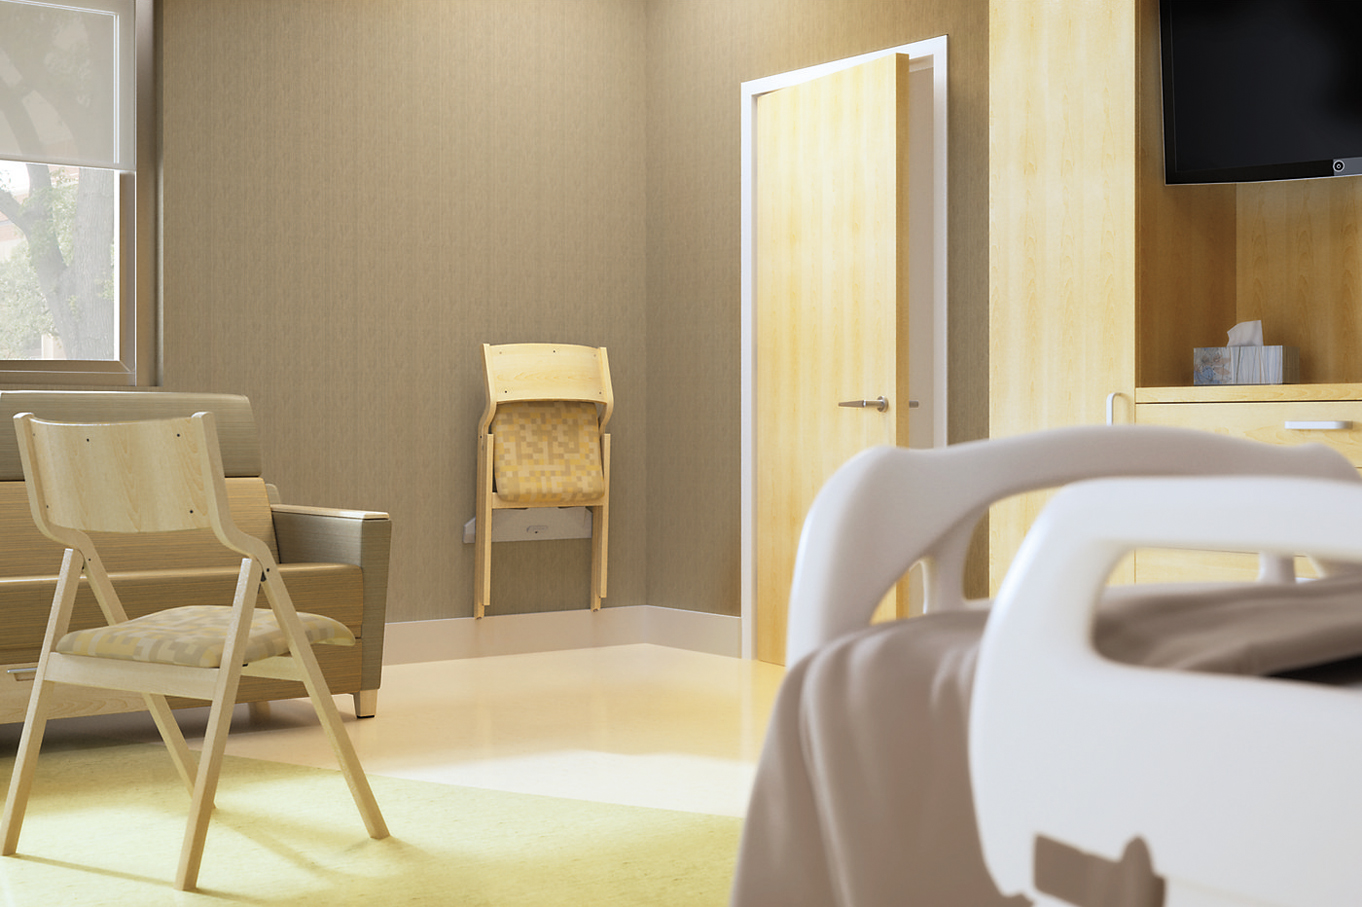 plyfold  smartrail  Wieland Healthcare Furniture